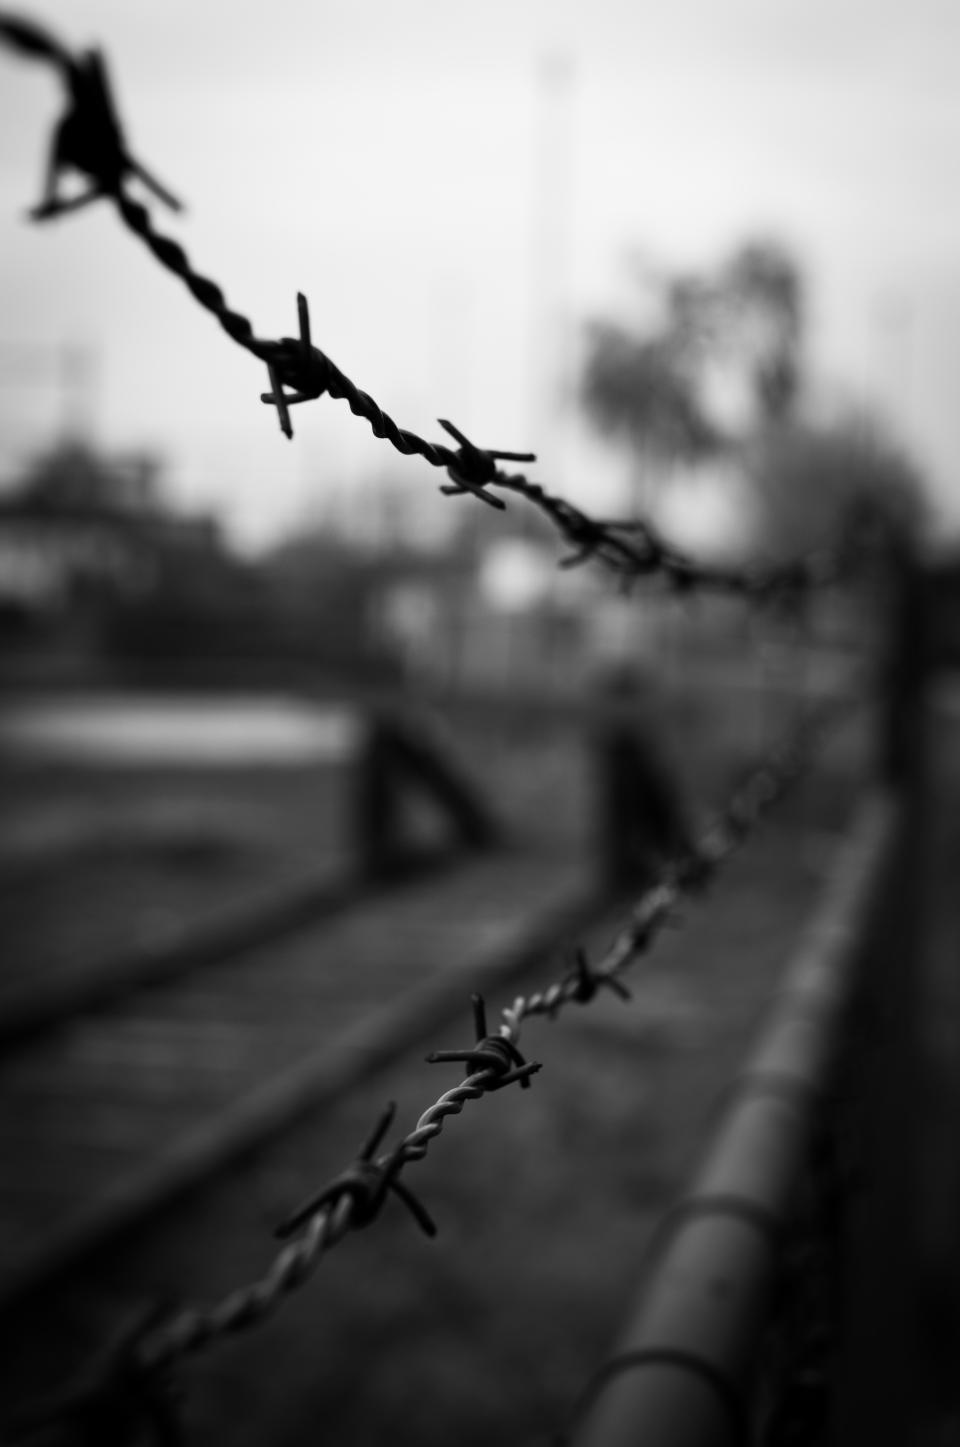 barbed wire barb wire black and white